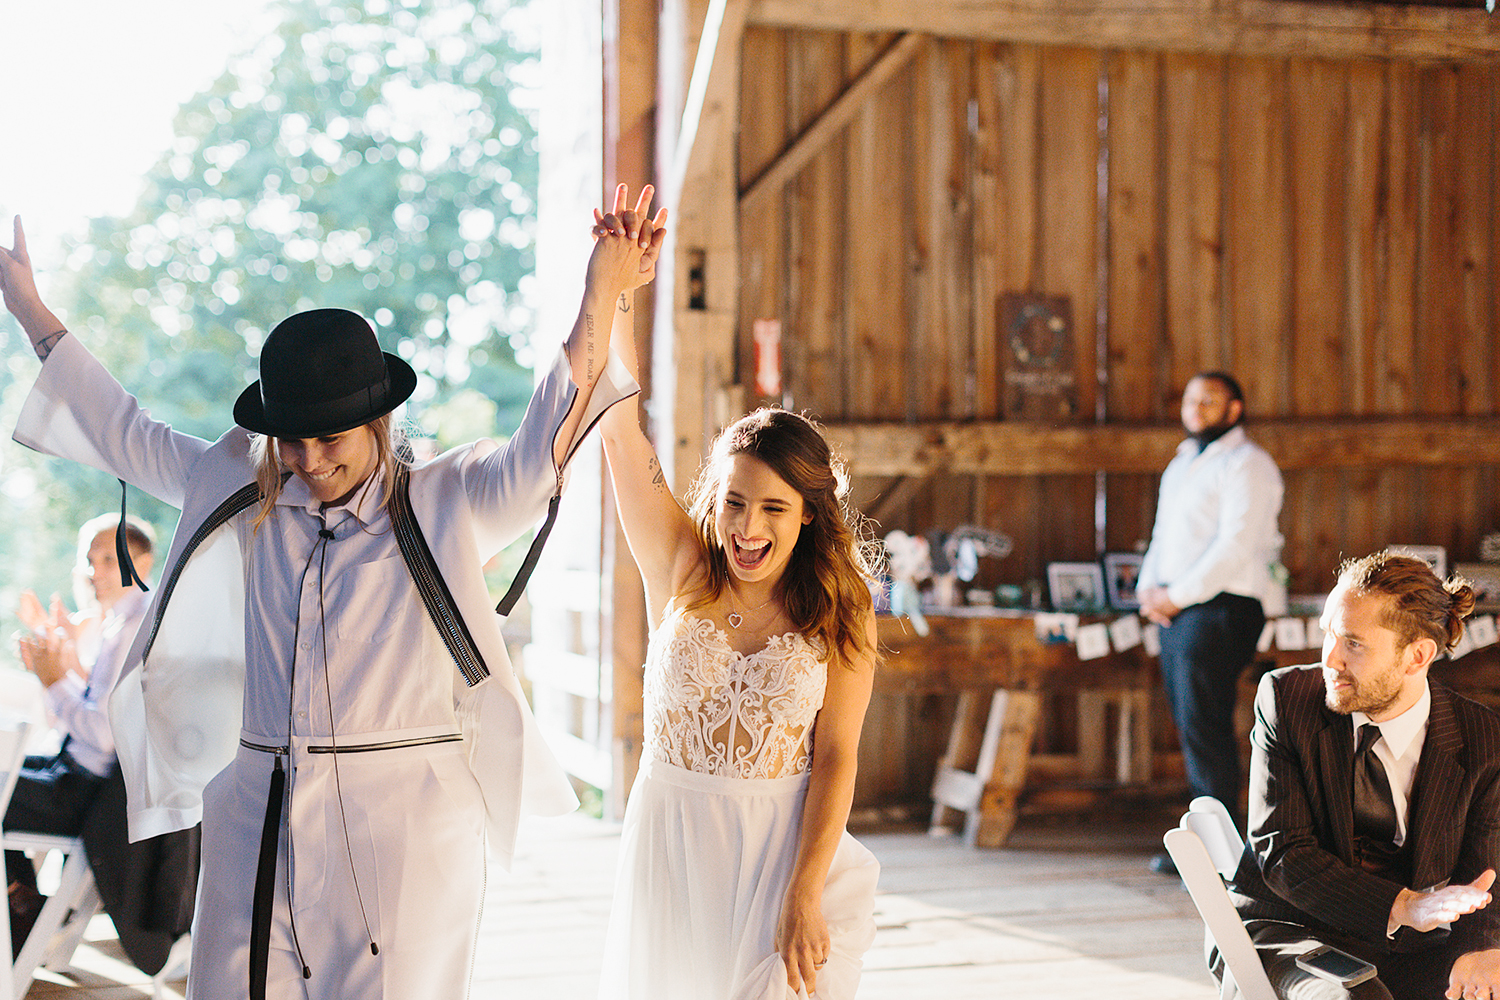 colour-cambium-farms-wedding-ryanne-hollies-photography-gay-wedding-lgbtq-trendy-cool-badass-junebug-weddings-inspiration-wedding-reception-in-a-barn-entrance-of-brides.jpg